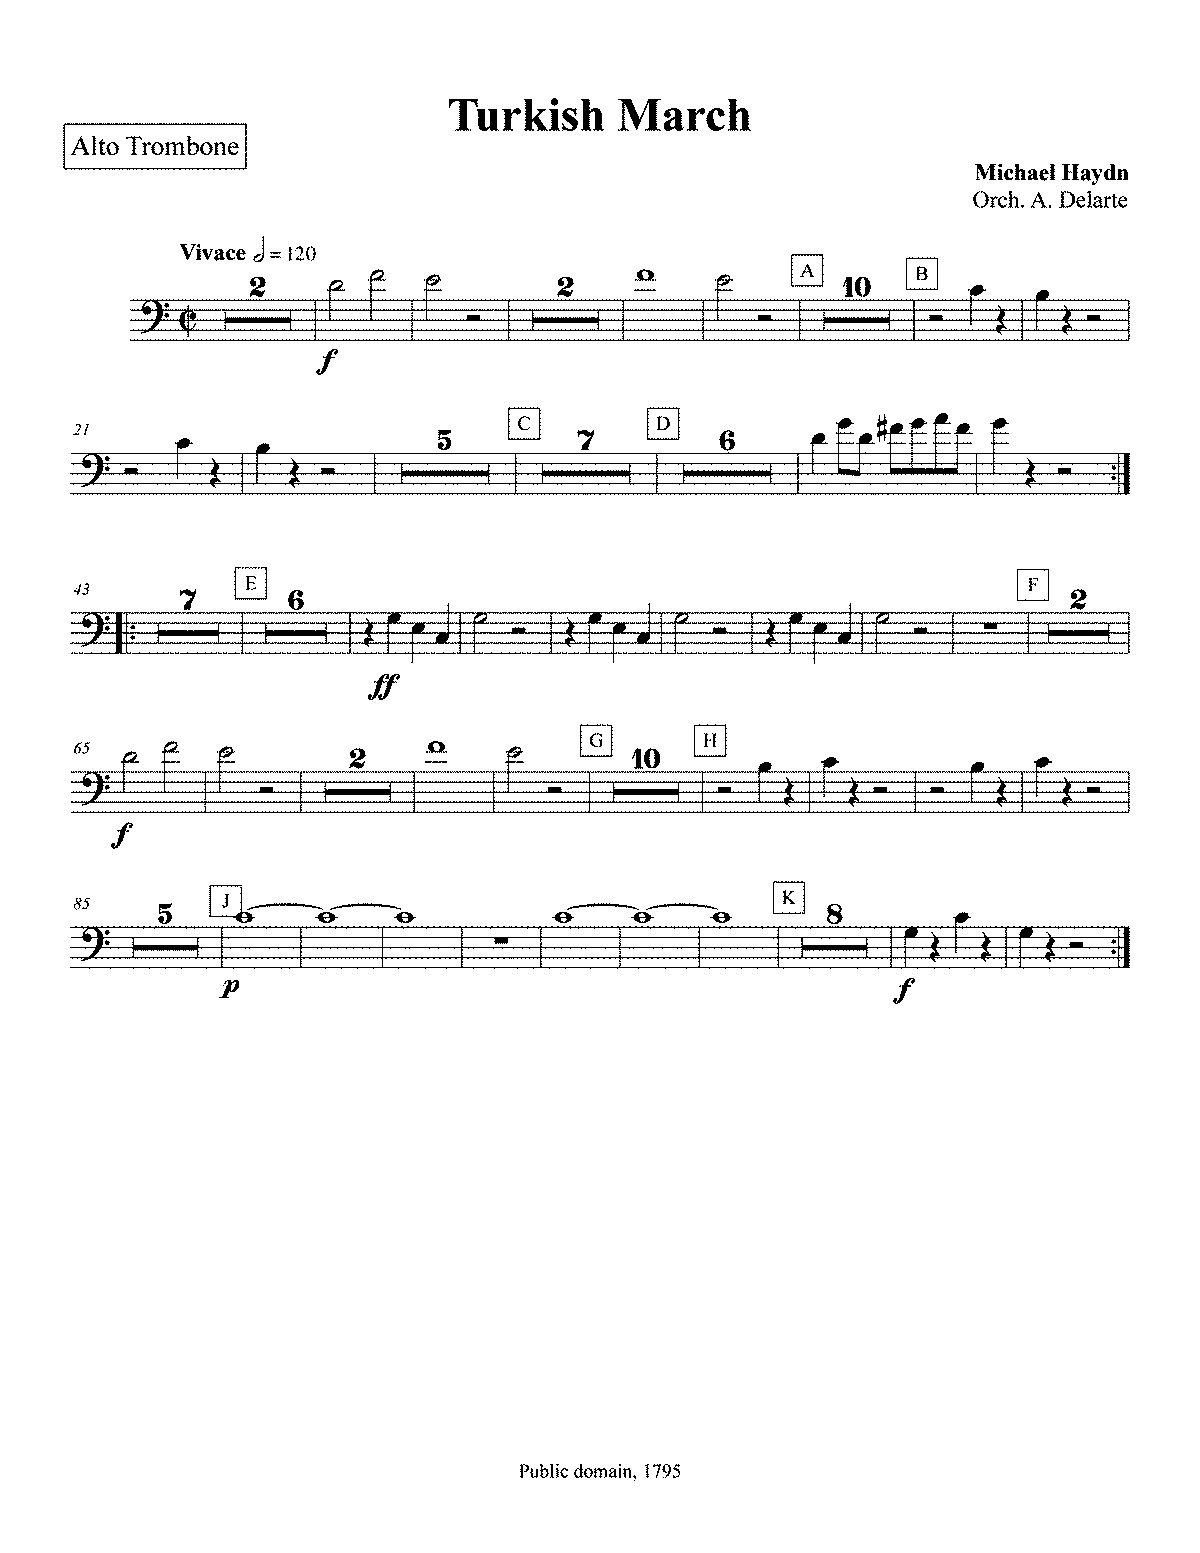 PMLP130783-Turkish March MH Orch in Bass Clef - Alto Trombone.pdf